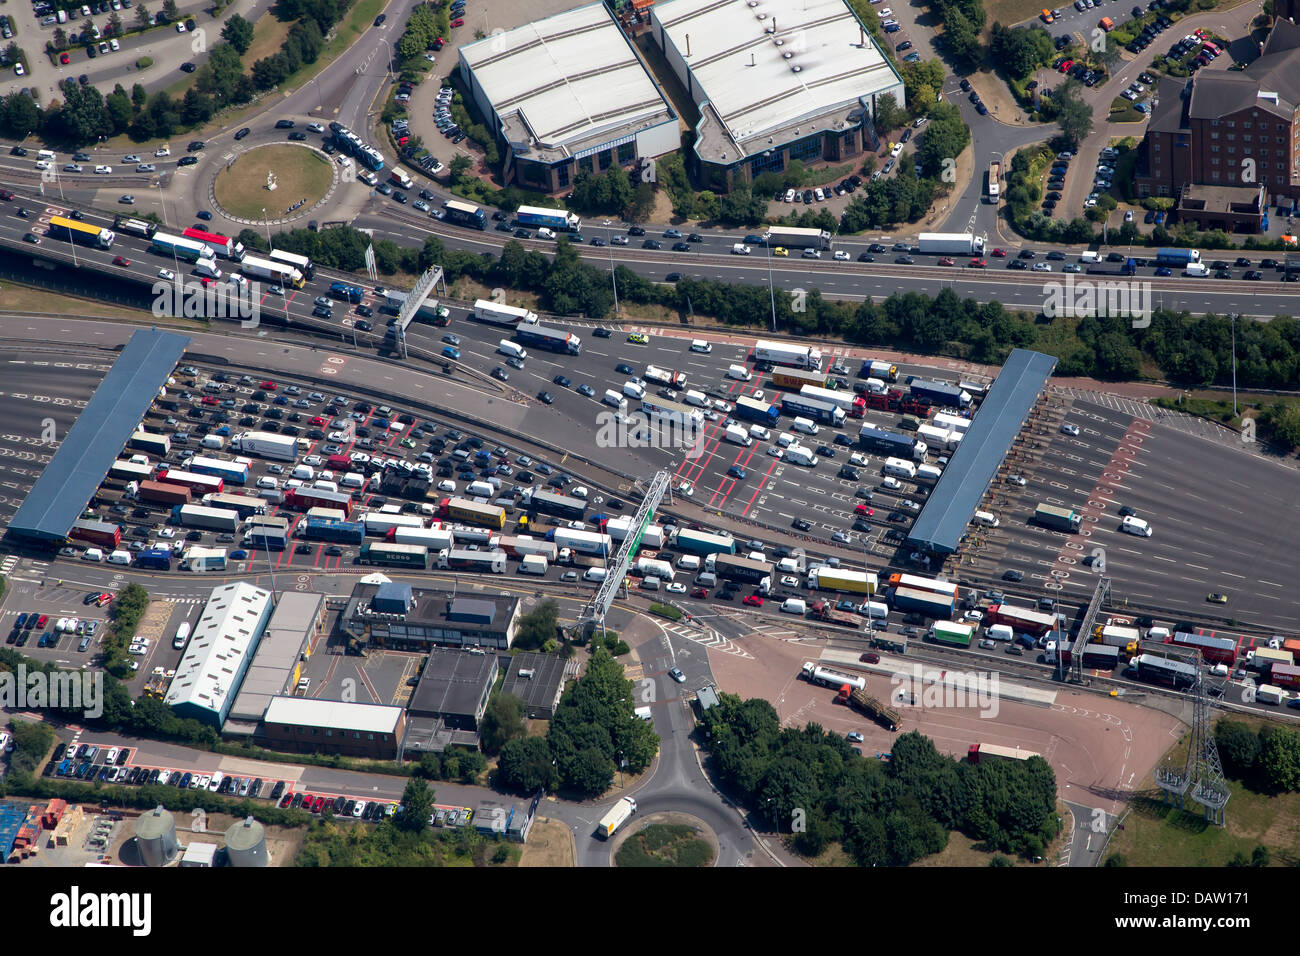 AN AERIAL VIEW OF BOTH TOLL BOOTHS OF THE QE2 BRIDGE WITH TRAFFIC QUEUING, - Stock Image